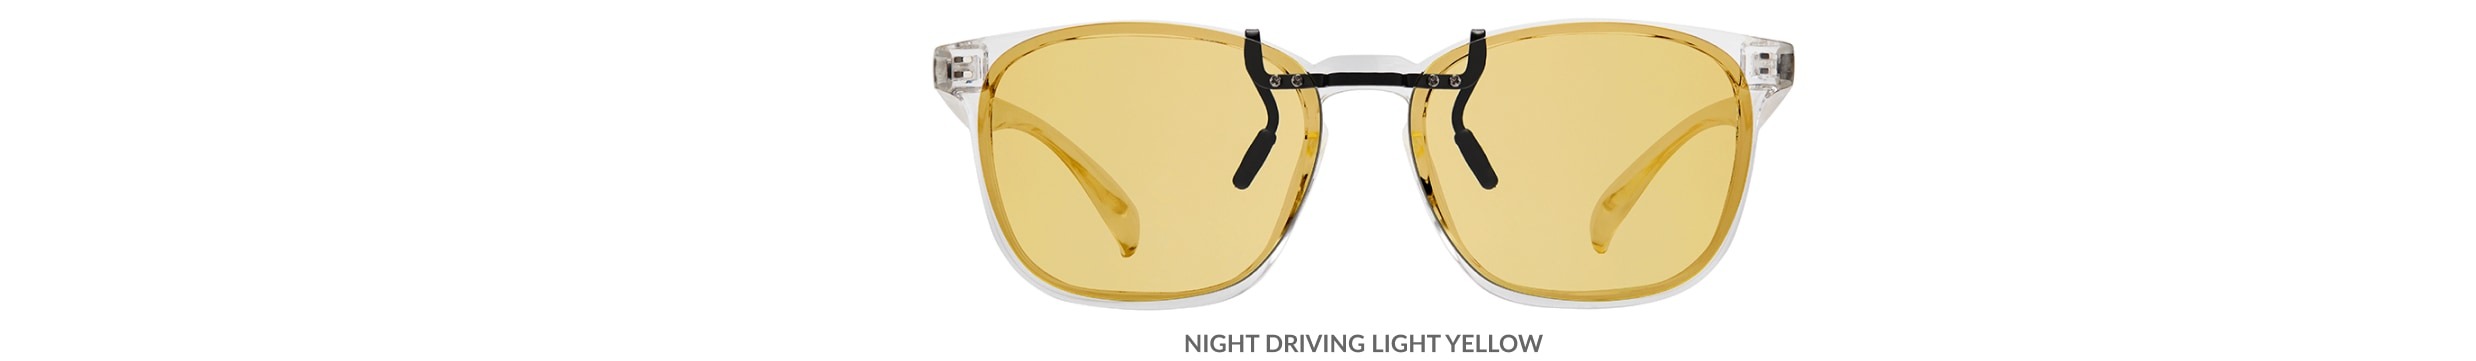 Custom clip-ons. Our polarized custom clip-ons reduce glare and are available for almost any frame. Each clip-on is specially cut to fit the frame with prices starting at just $3.95  (Compare to $50). Zenni square glasses #2020123 in clear, shown with night driving light yellow custom clip-on.